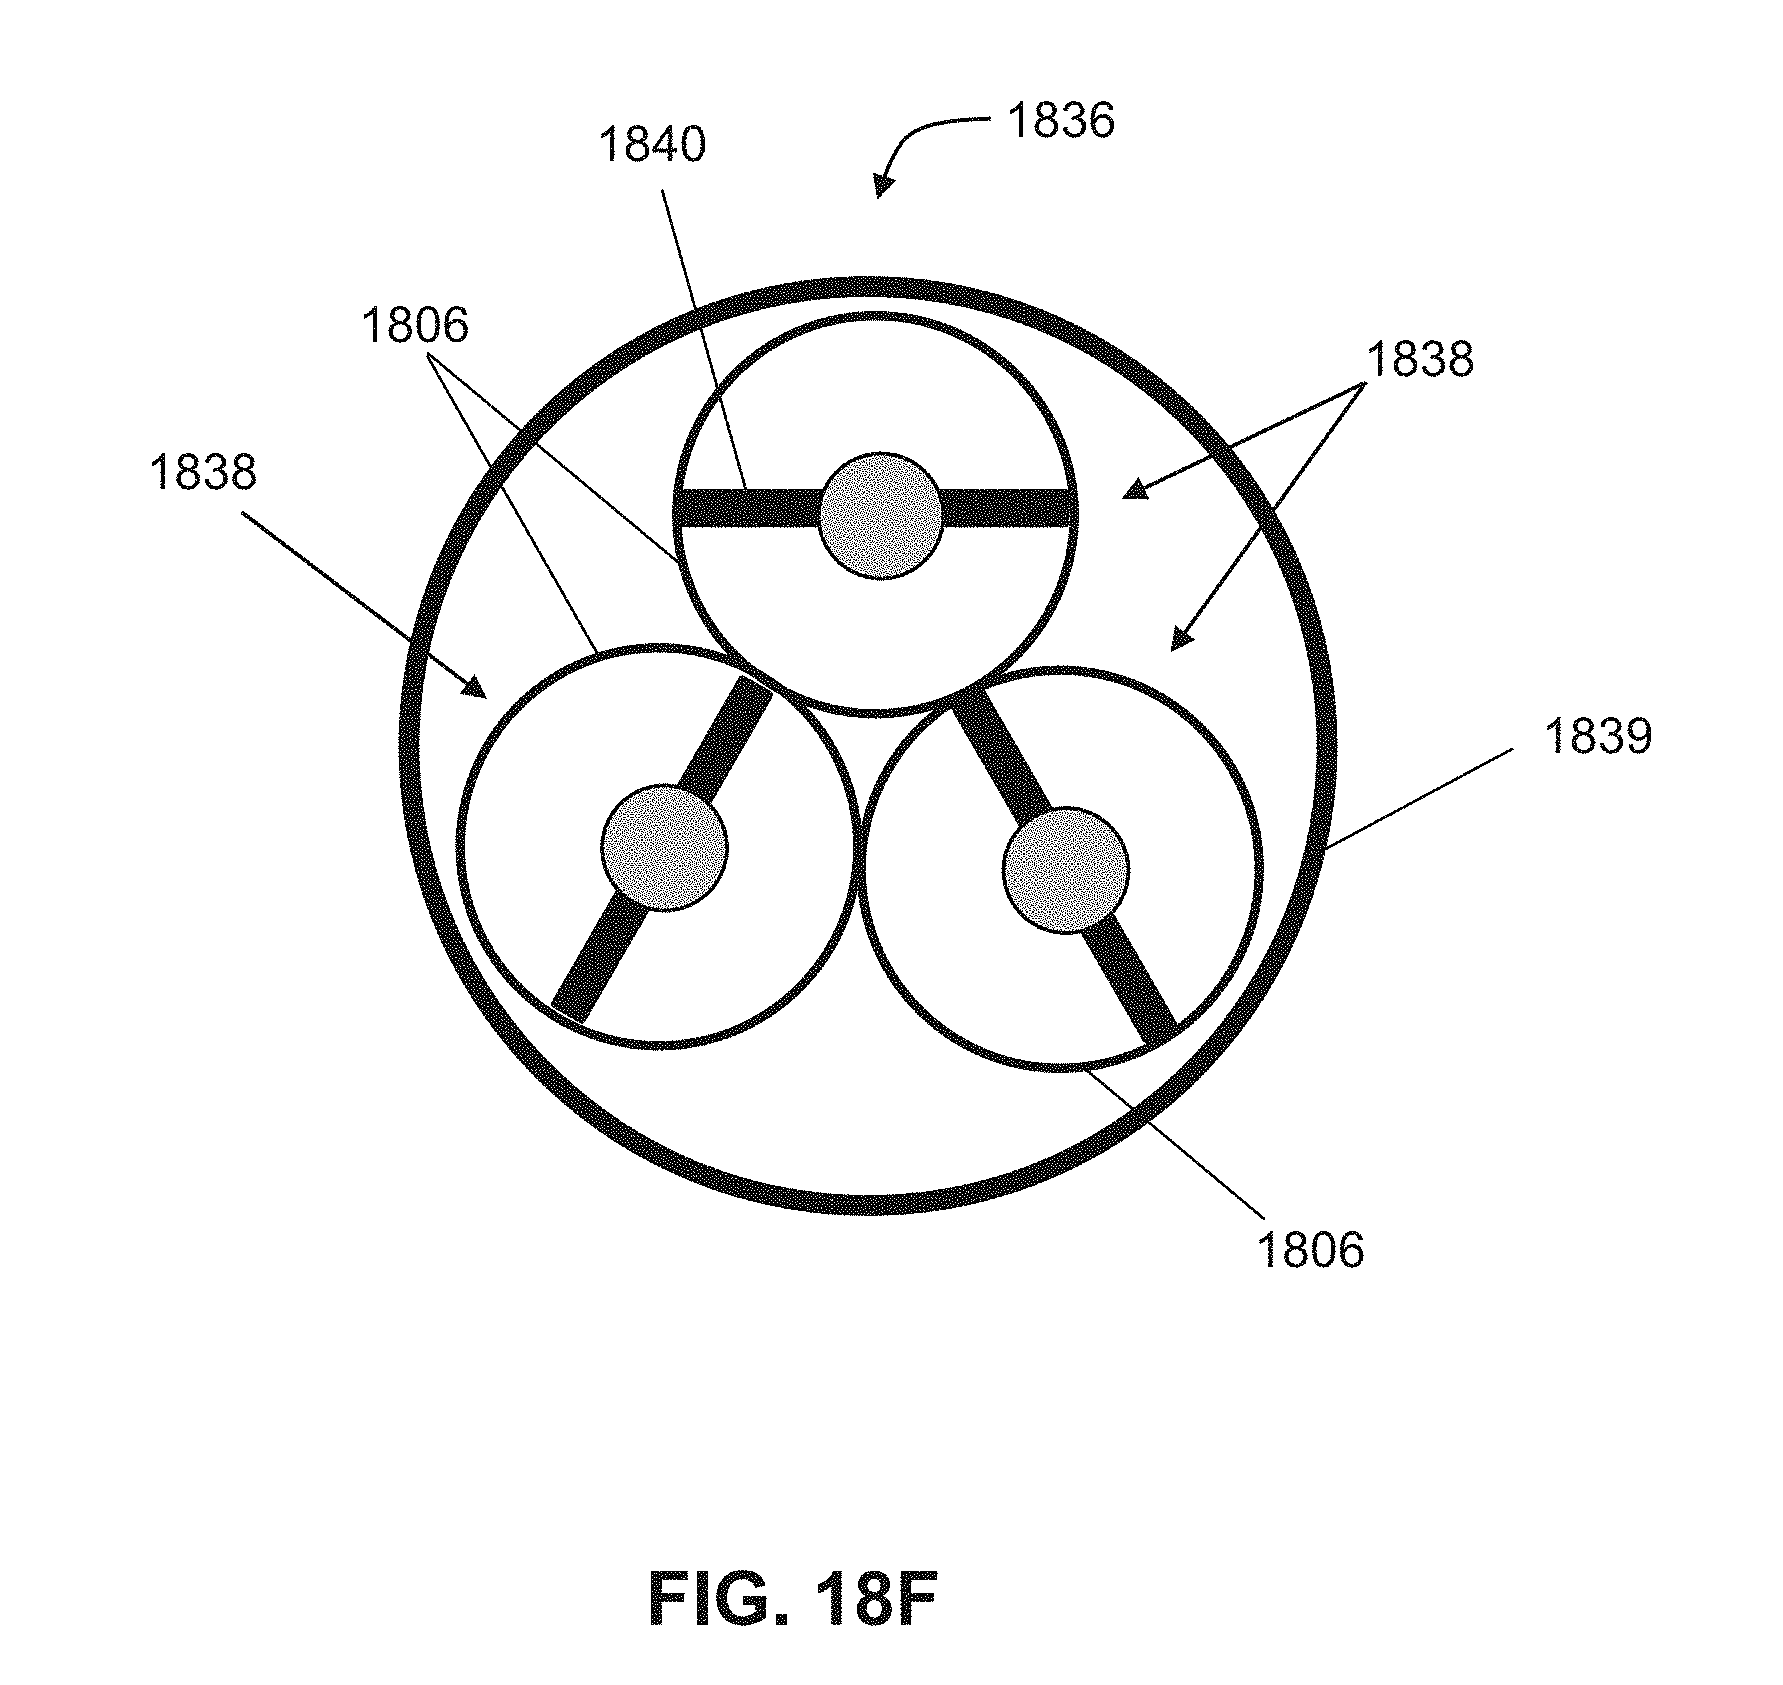 us9787412b2 methods and apparatus for inducing a fundamental wave 1957 Continental Mark II us9787412b2 methods and apparatus for inducing a fundamental wave mode on a transmission medium patents